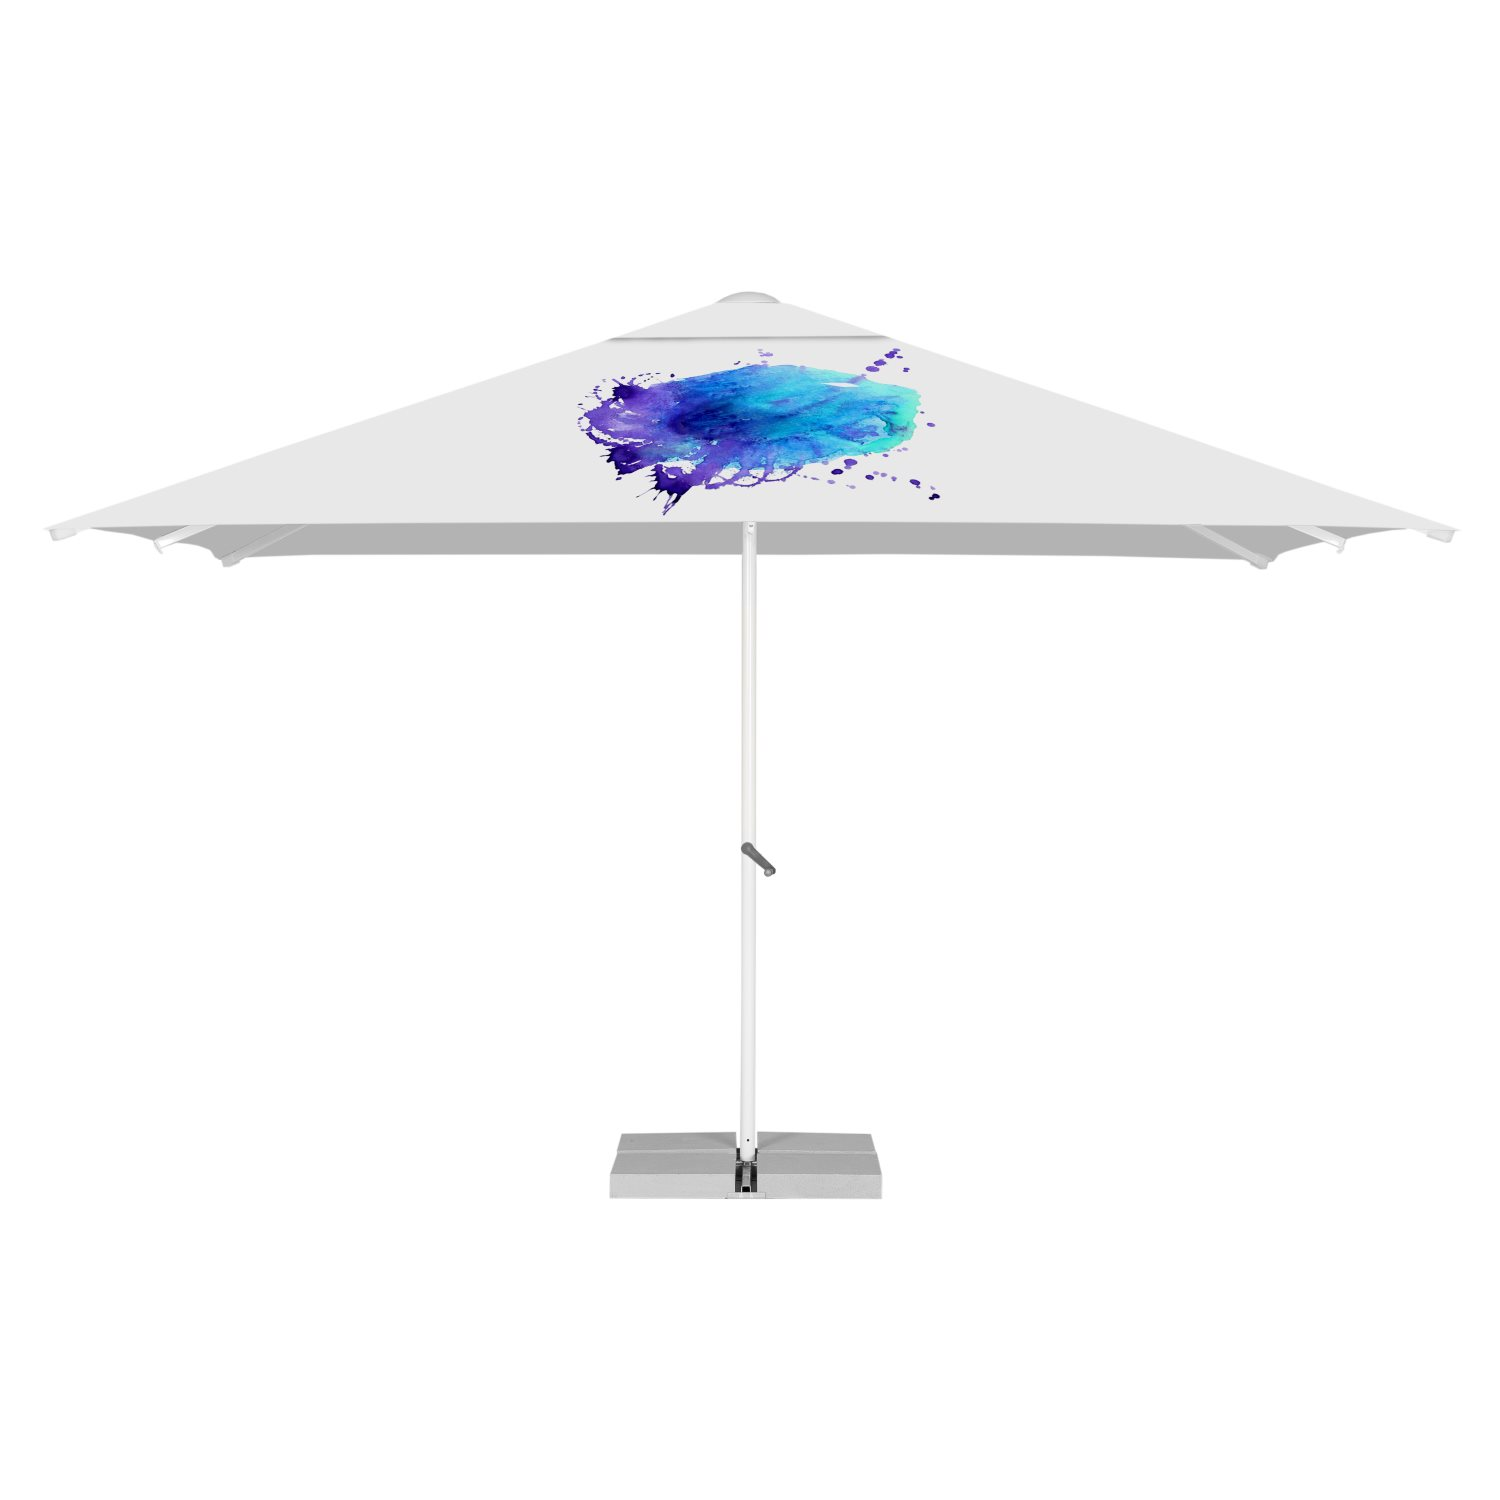 13. Strong Square Parasol 4m